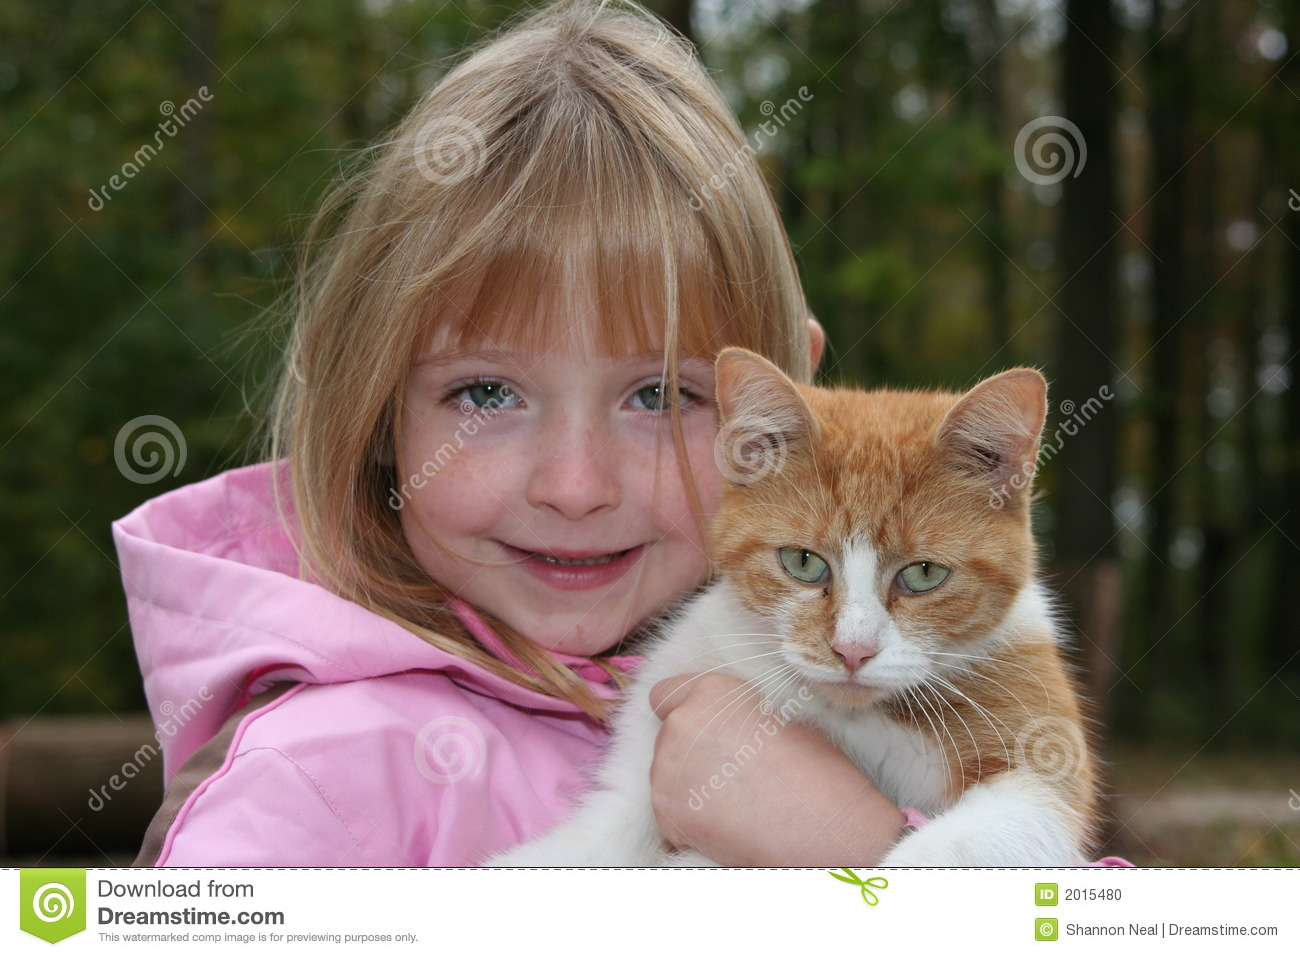 Holding A Cat Stock Photo Image 2015480